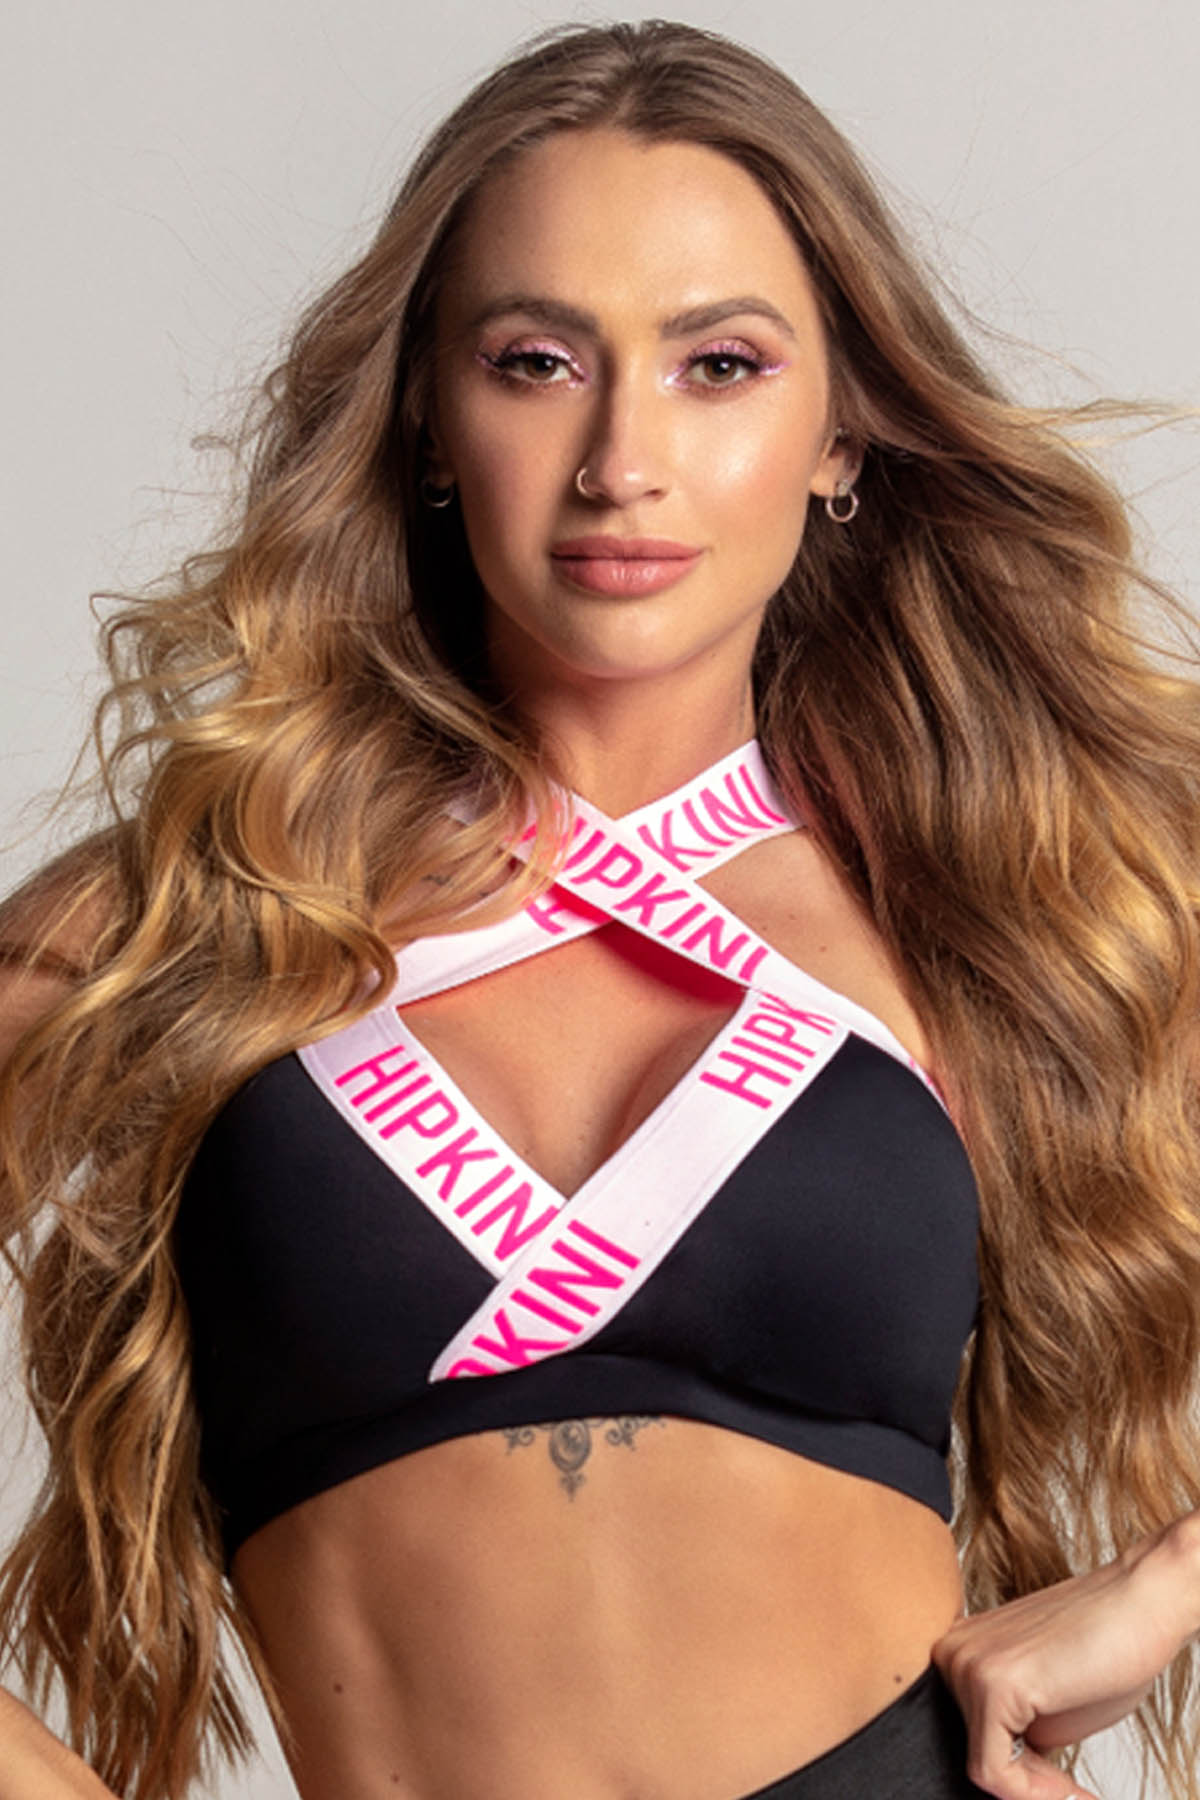 TOP DREAM FITNESS PRETO COM ELÁSTICO ROSA HIPKINI